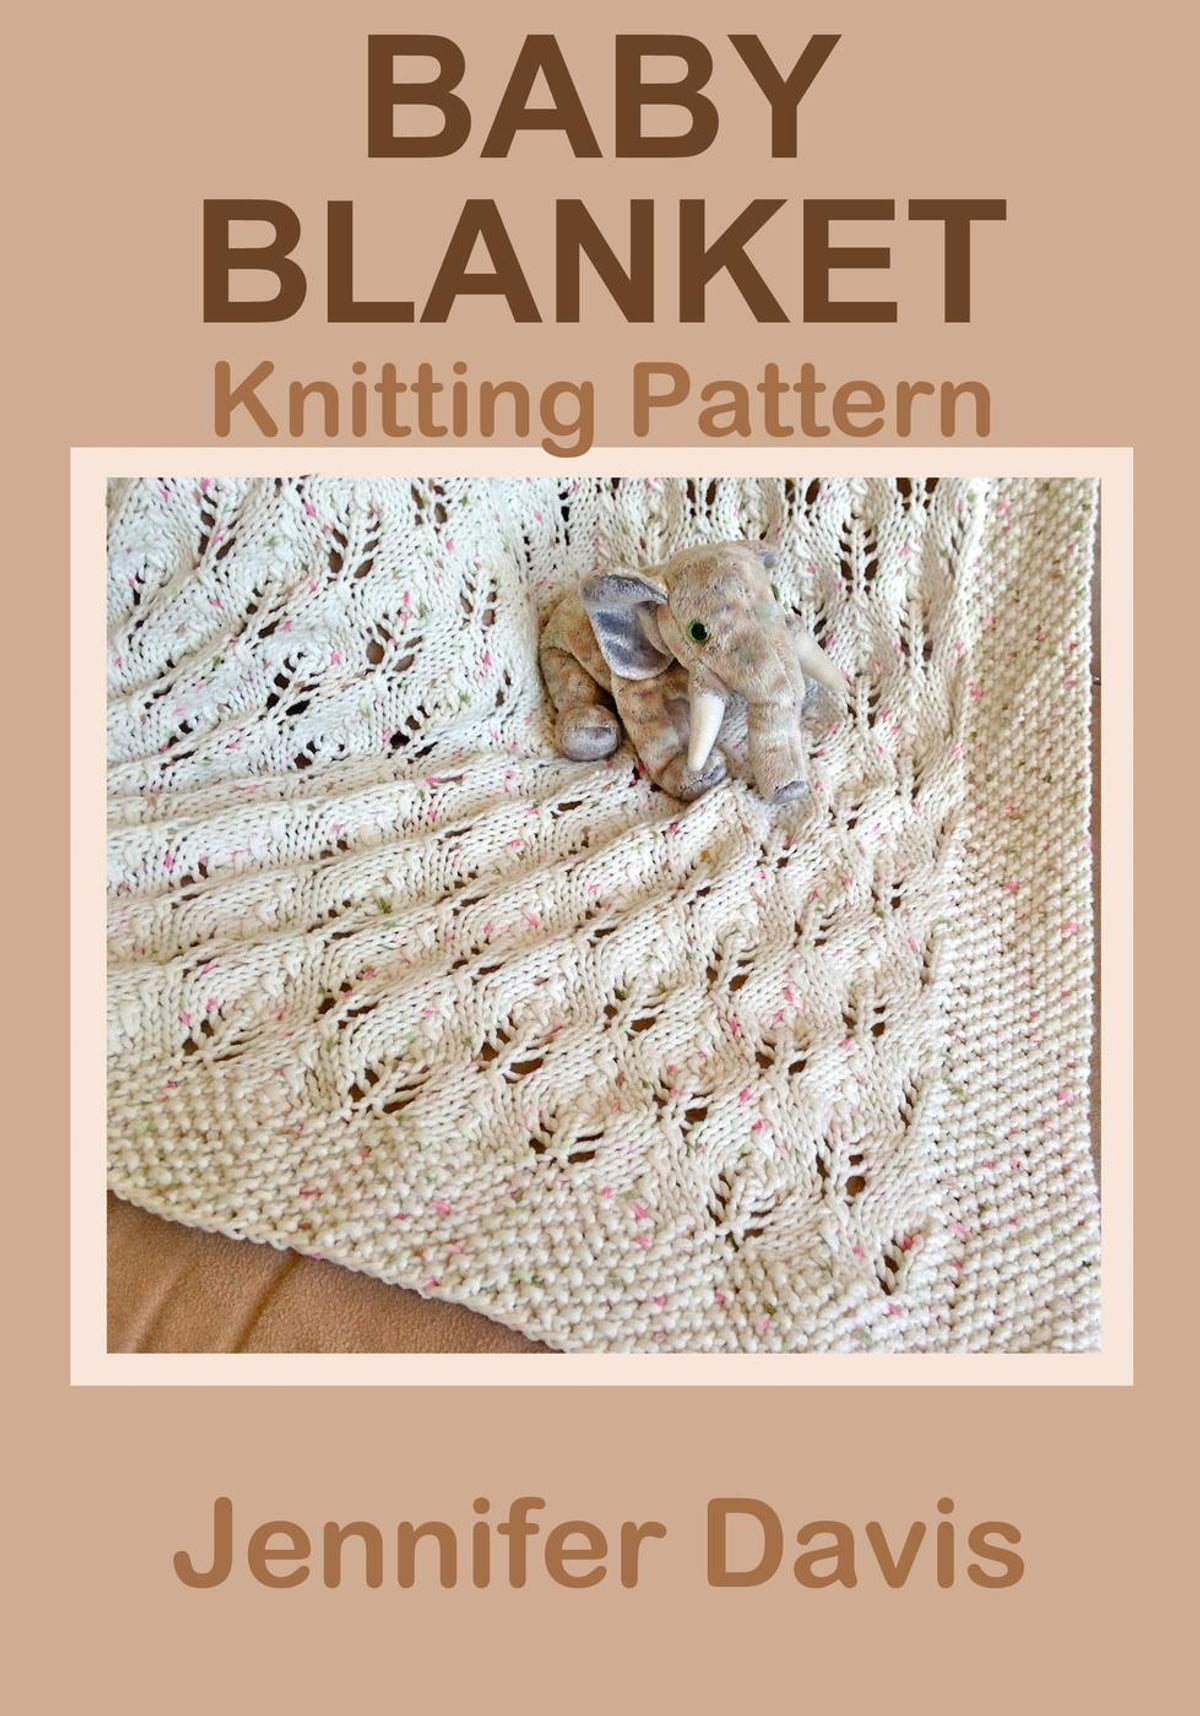 3947db5f9 Baby Blanket  Knitting Pattern eBook by Jennifer Davis ...